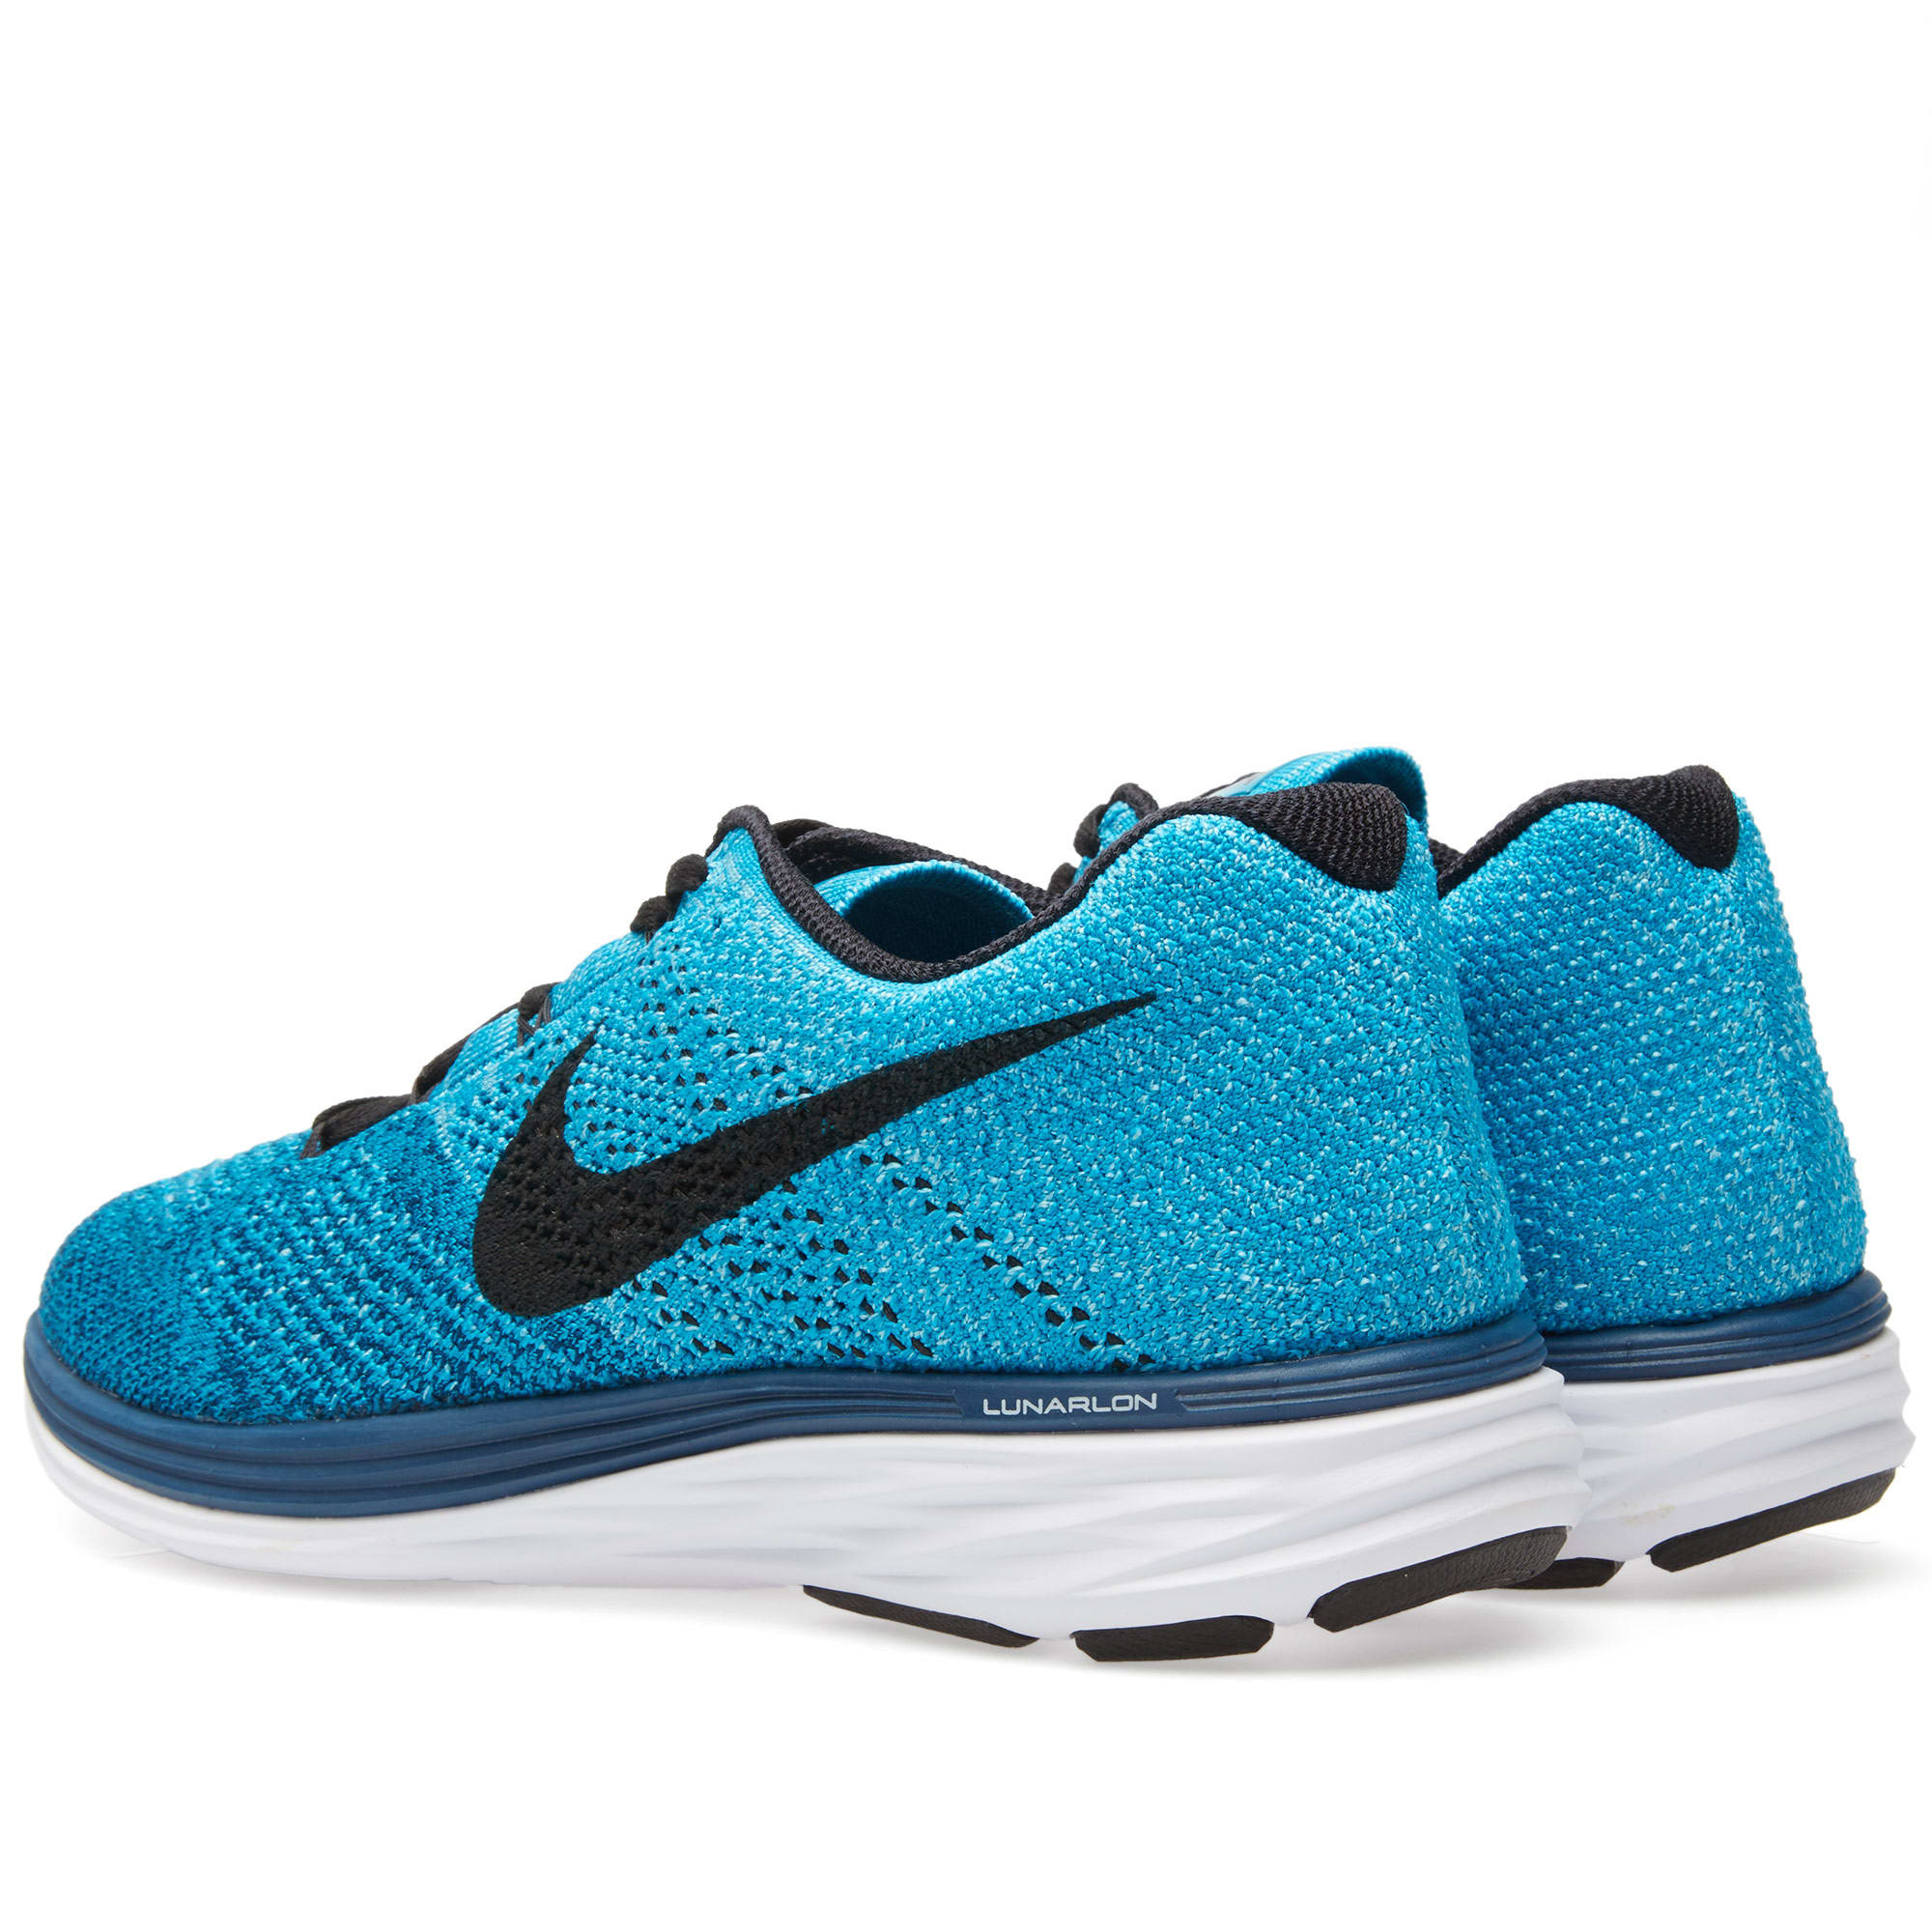 super popular 65f8e 49d69 Nike Flyknit Lunar 3 Brave Blue   Black   END.